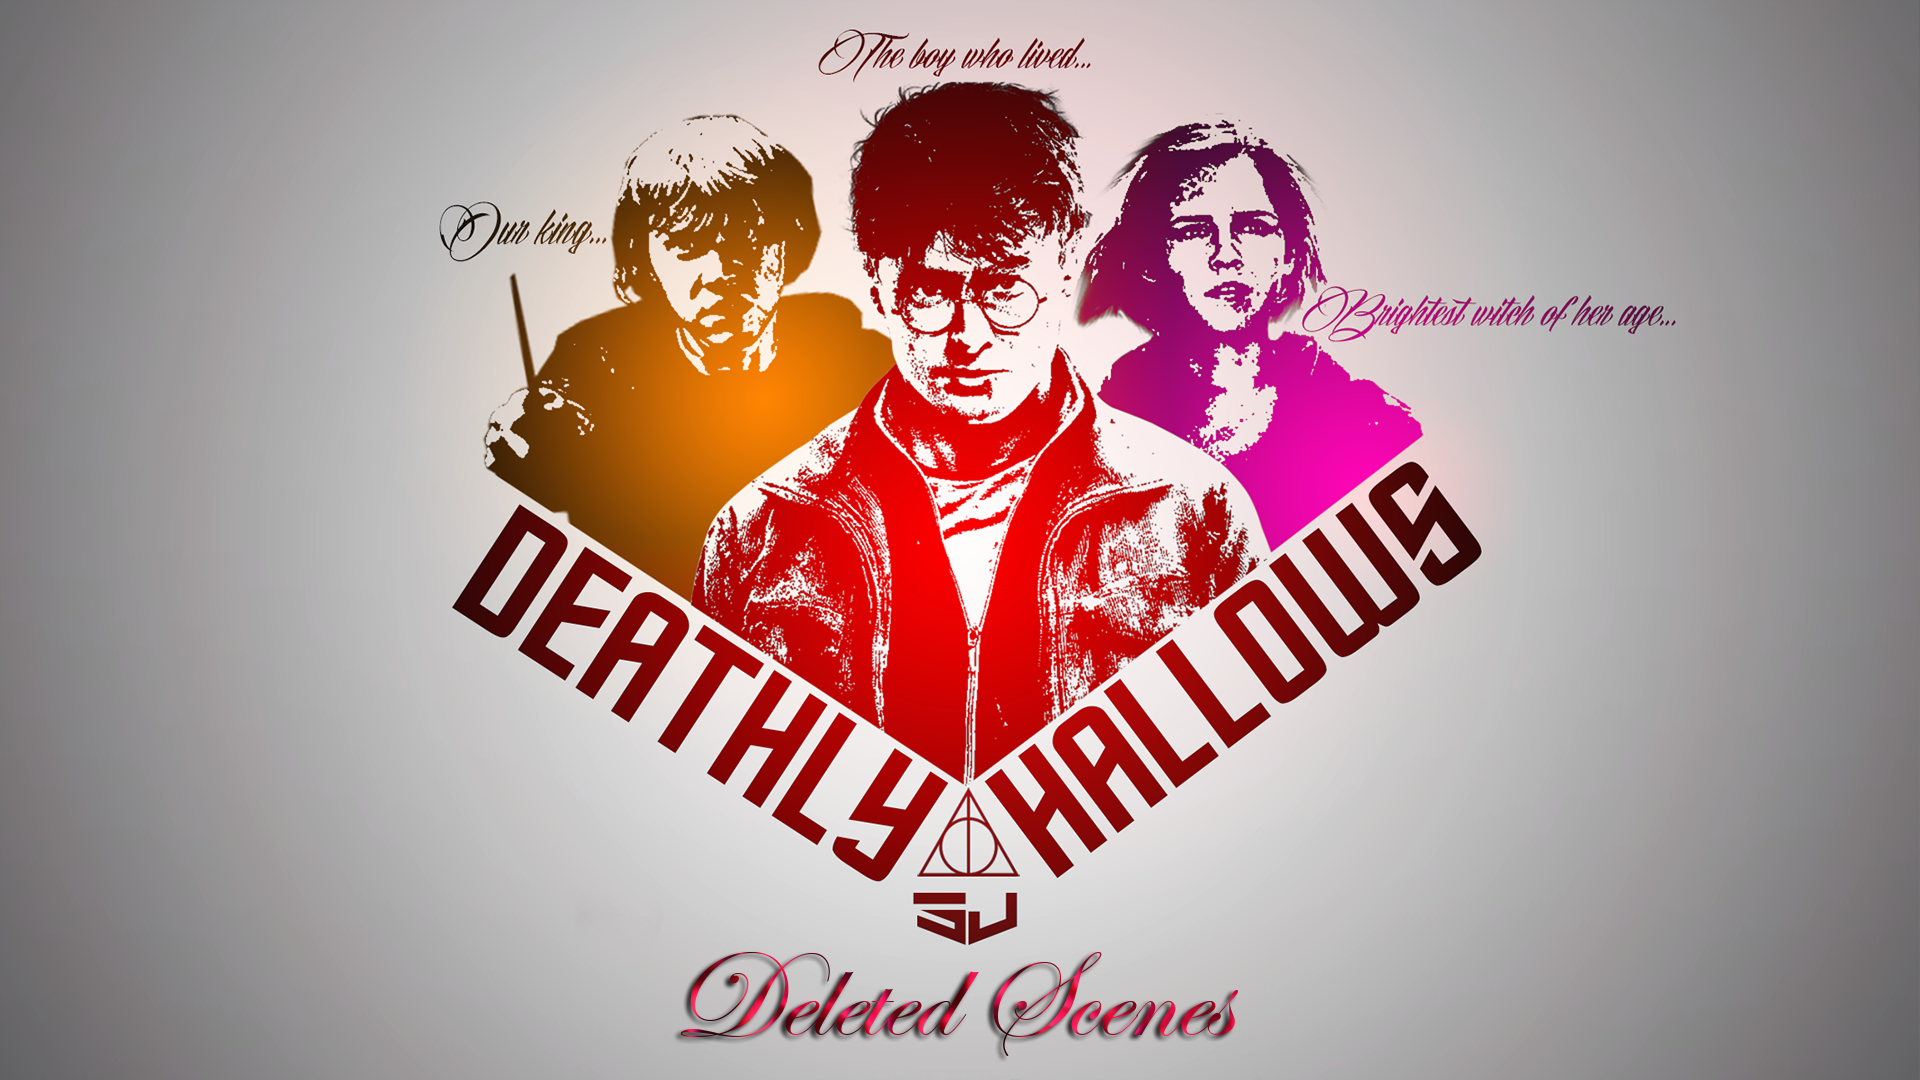 deathly_hallows_wallpaper_by_sj_by_sjstyles316-da6exur